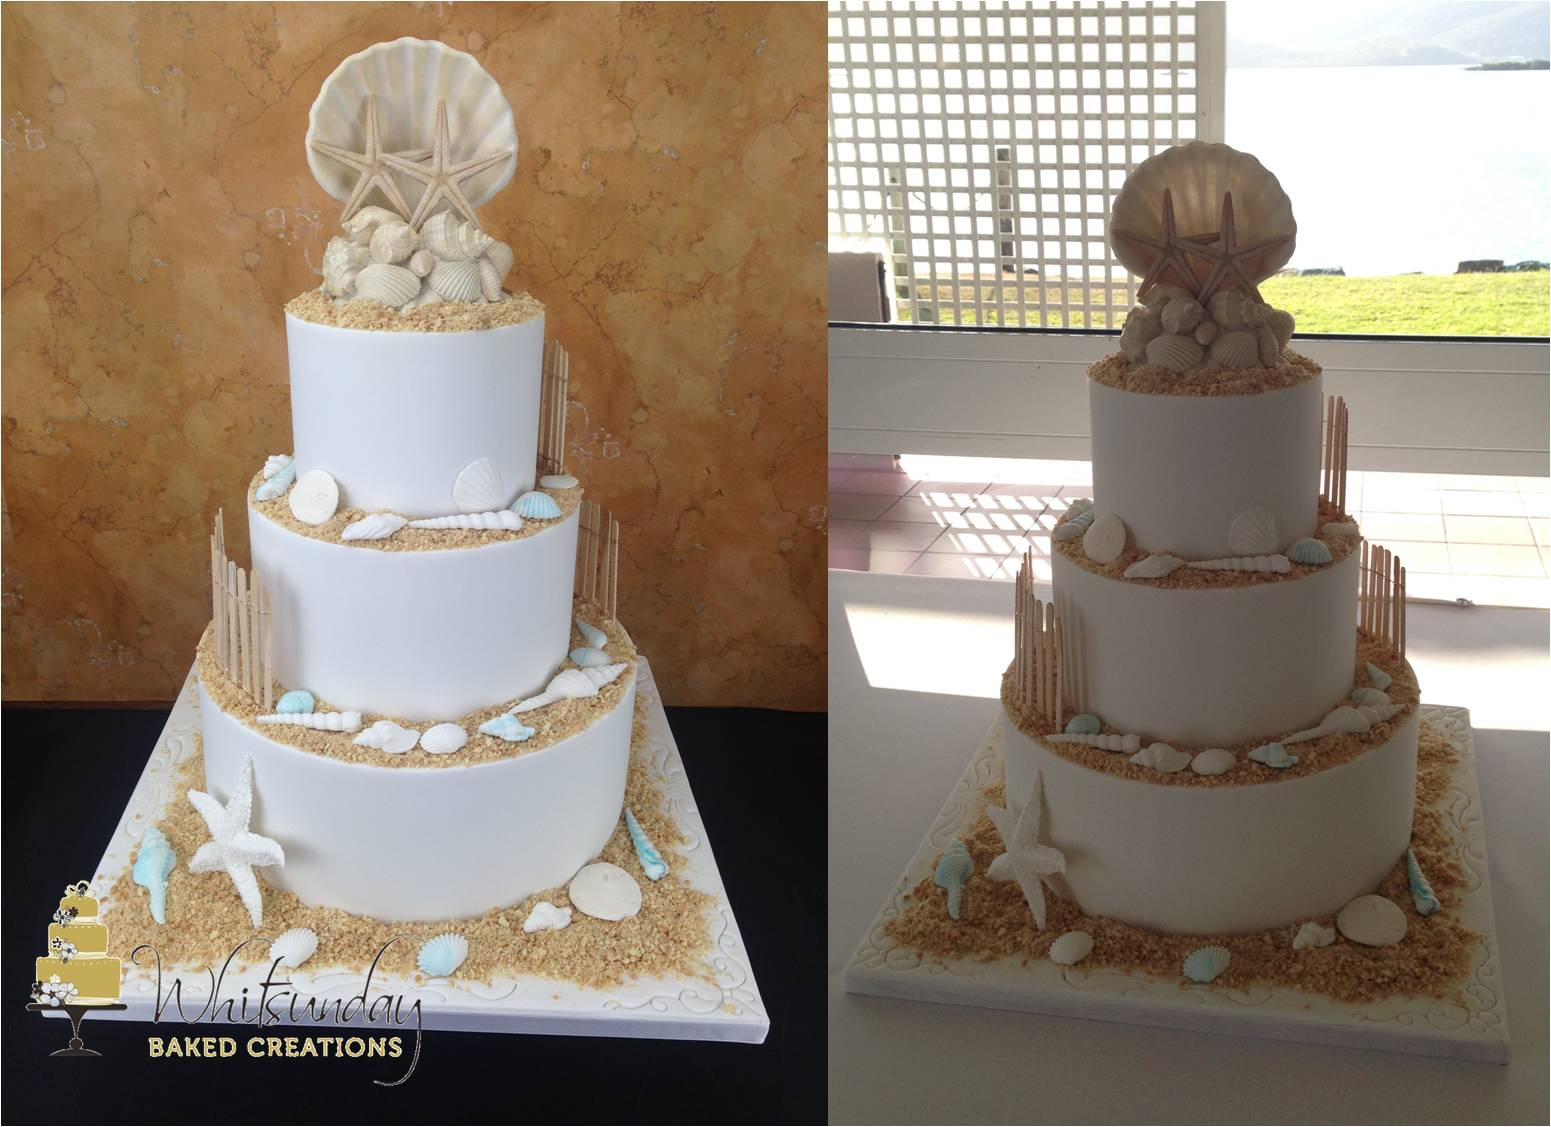 the latest wedding cake designs whitsunday baked creations 20867